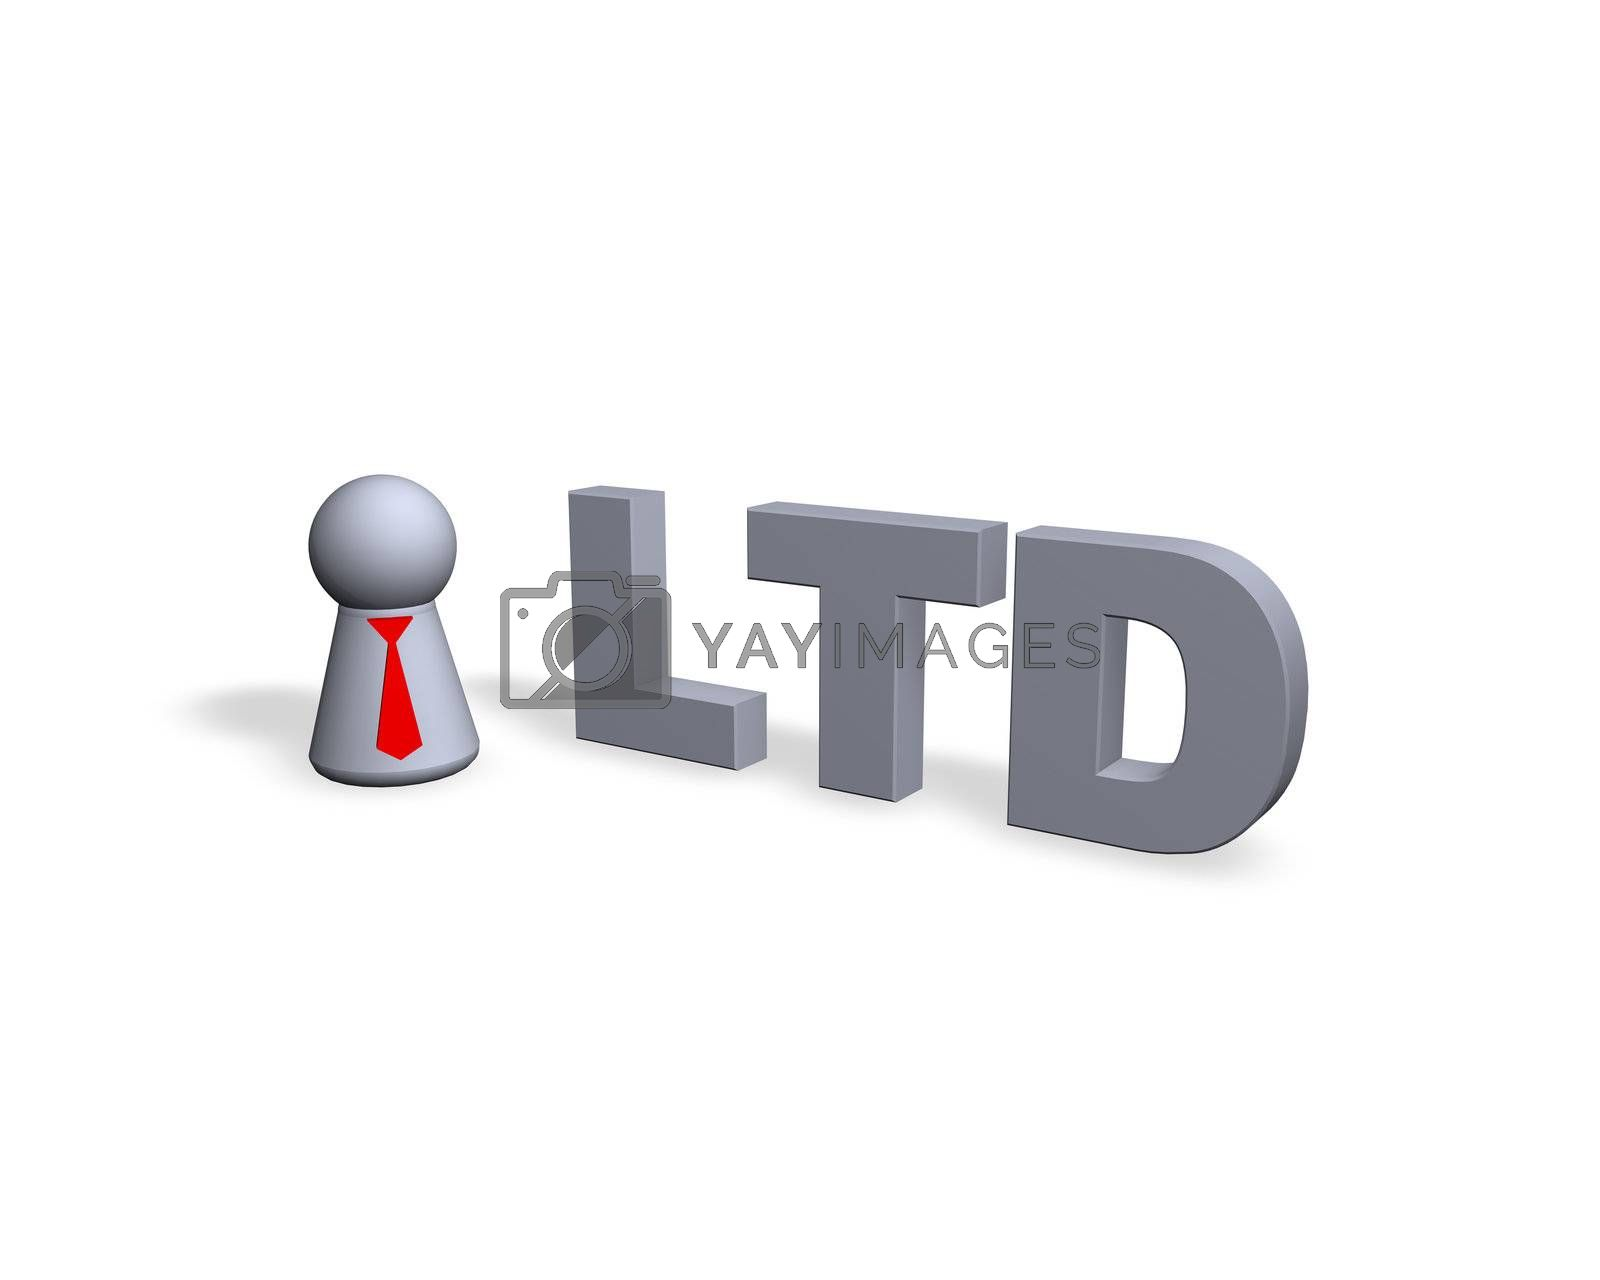 play figure with red tie and ltd text in 3d